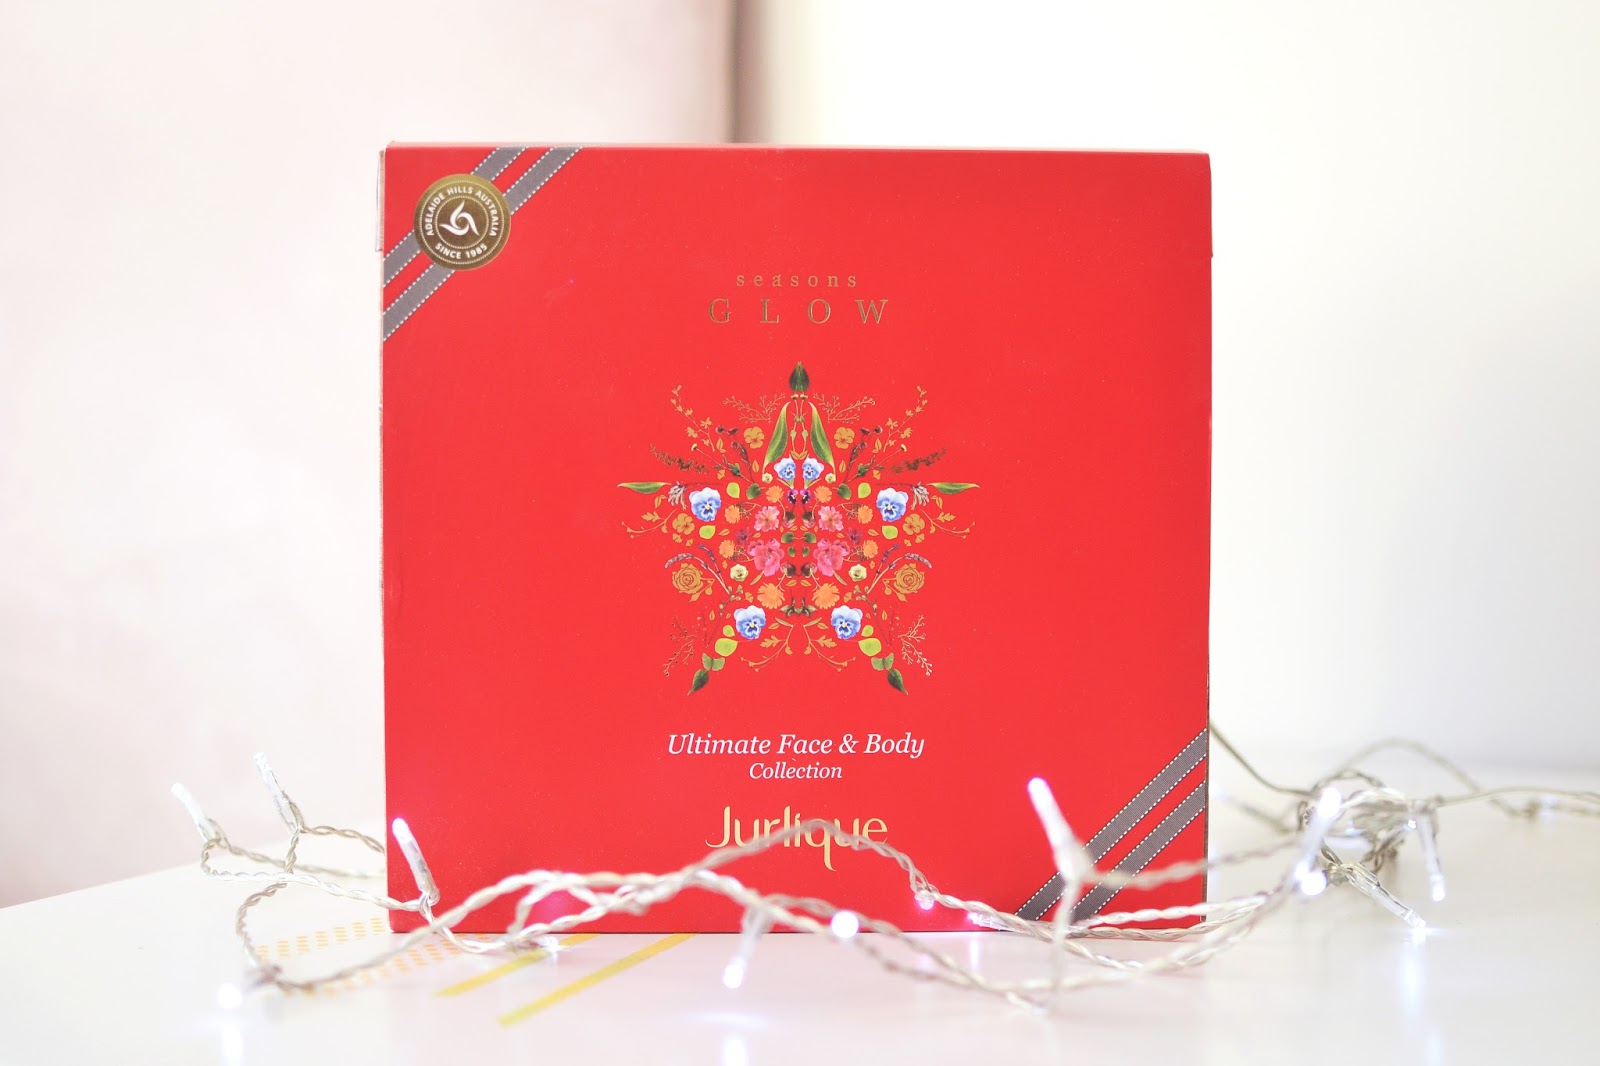 Jurlique Gift Sets, Jurlique review